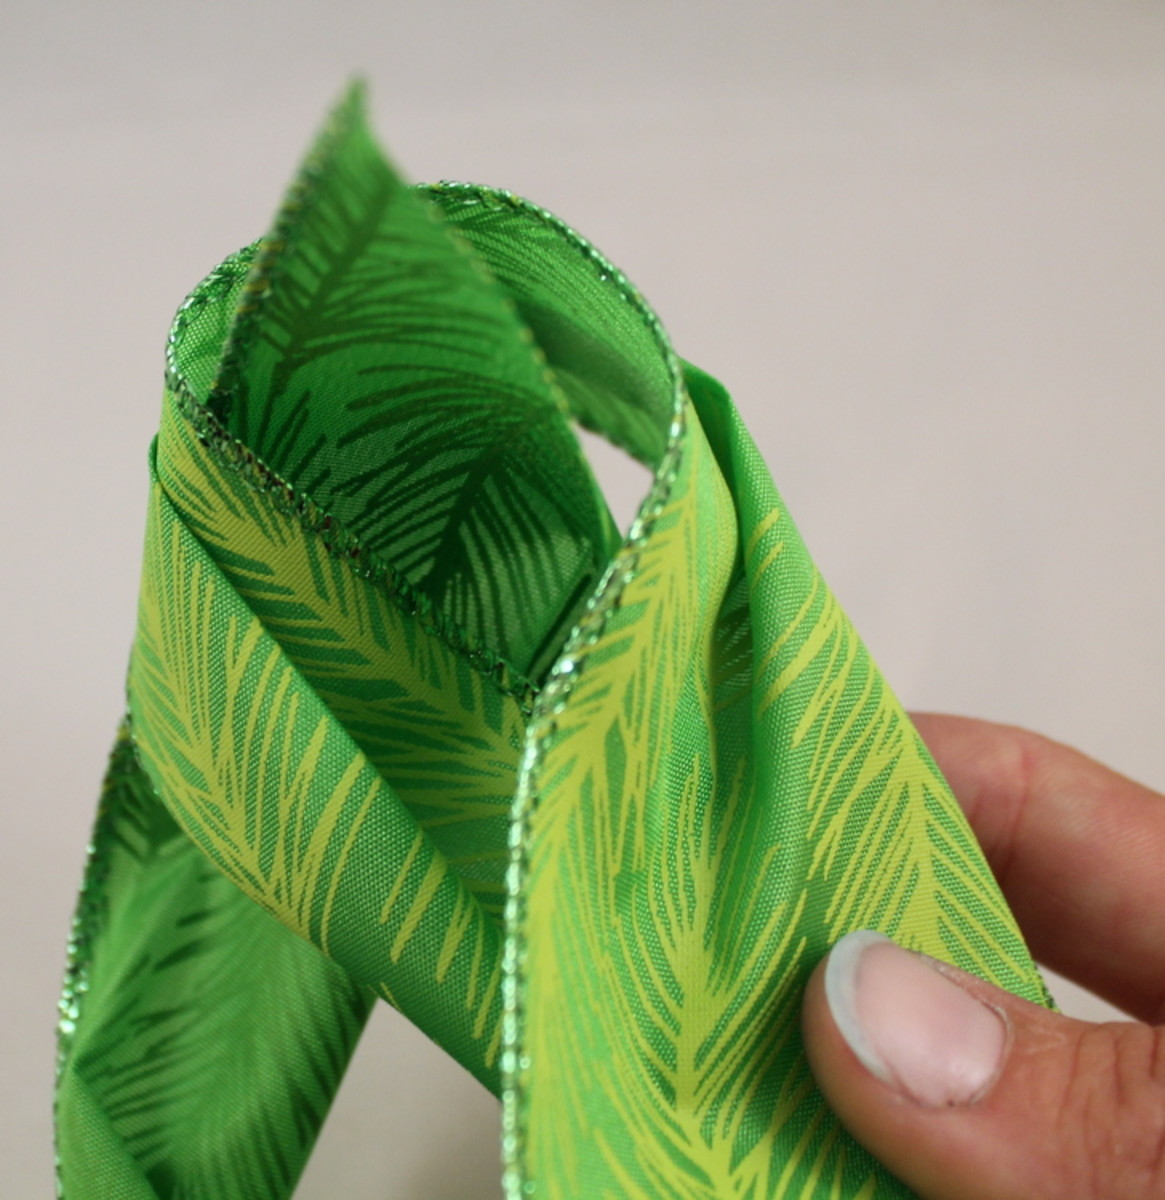 Using whichever end of the ribbon is 'on top' of the loop, bring the ribbon's end through the loop from front to back.